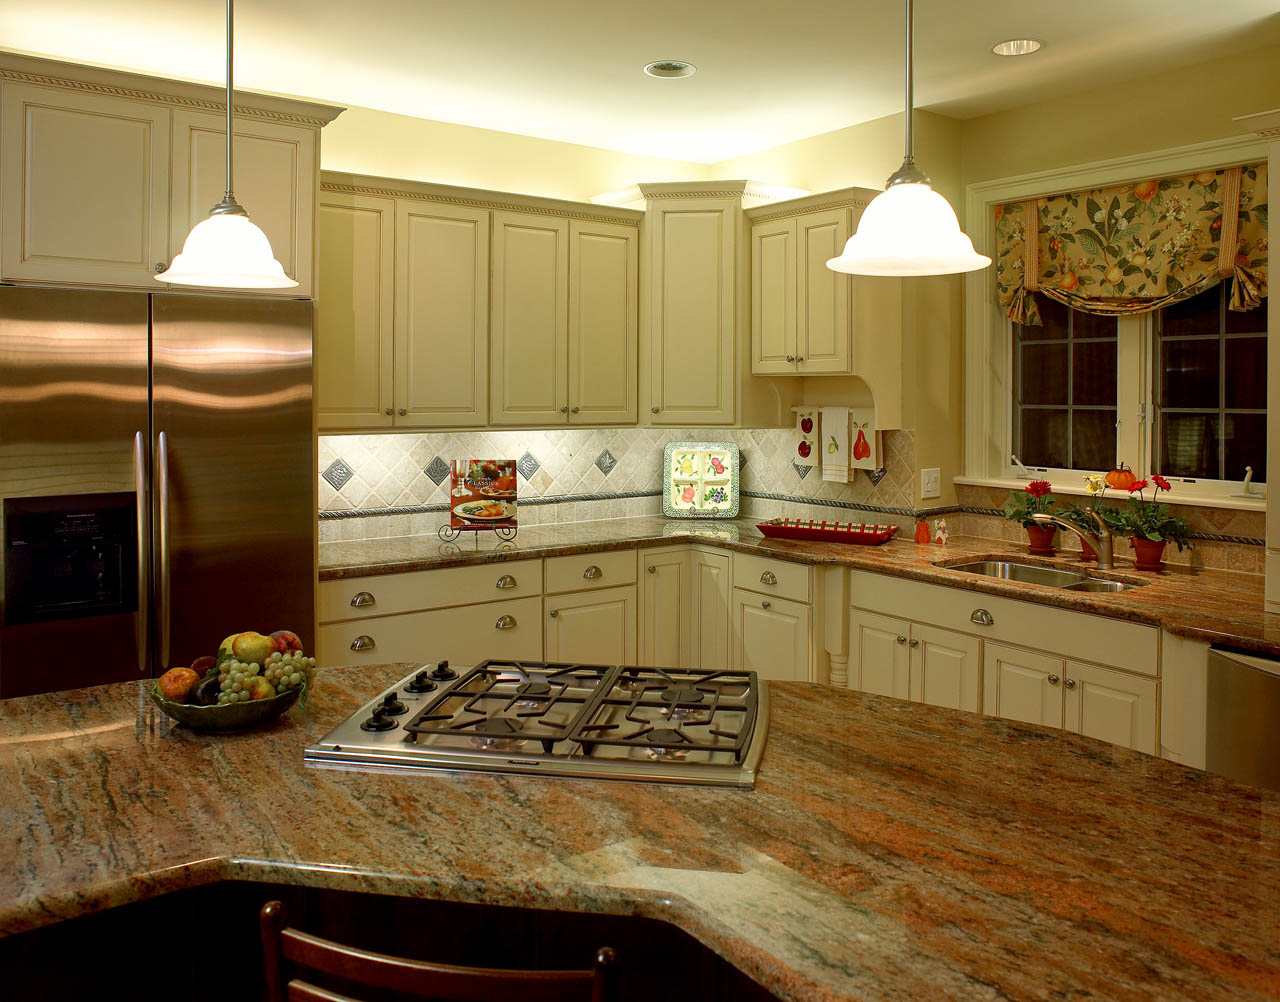 Saratoga energy efficient home projects design works programs lighting research center Energy efficient kitchen design